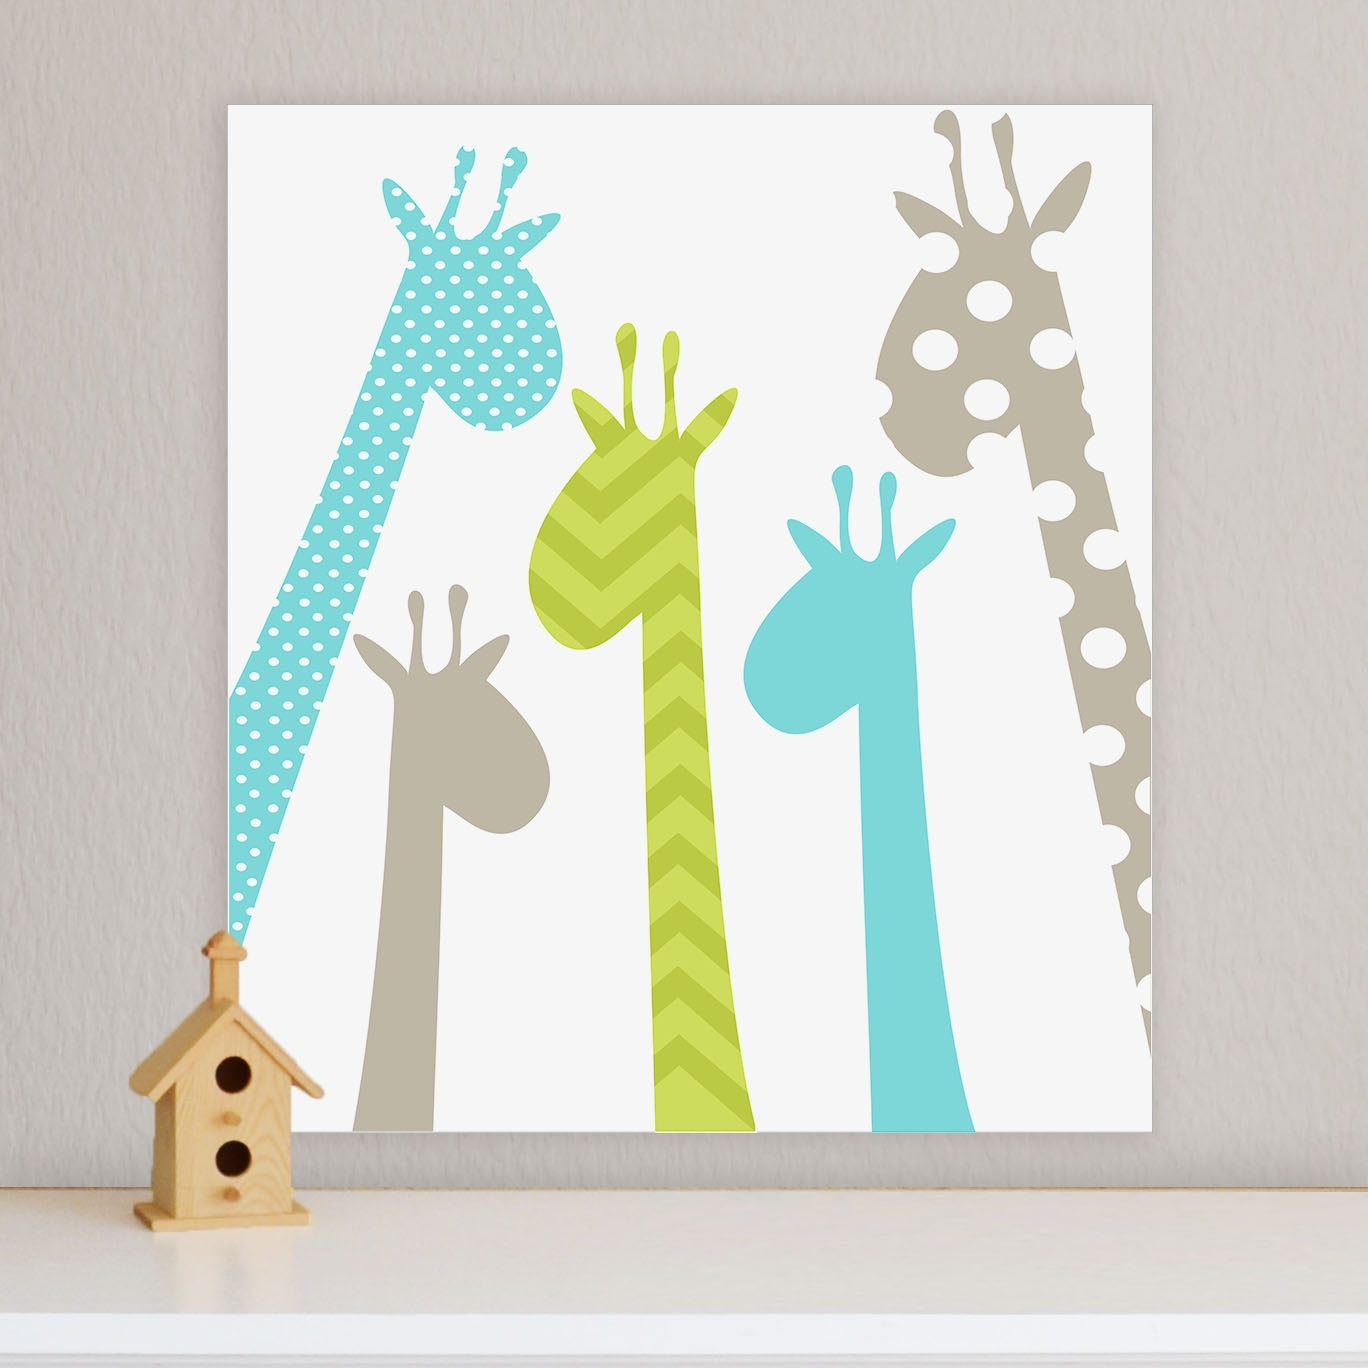 Most Recent Canvas Wall Art For Kids Rooms – Dronemploy #00C8F2Ef646C With Regard To Giraffe Canvas Wall Art (View 10 of 15)